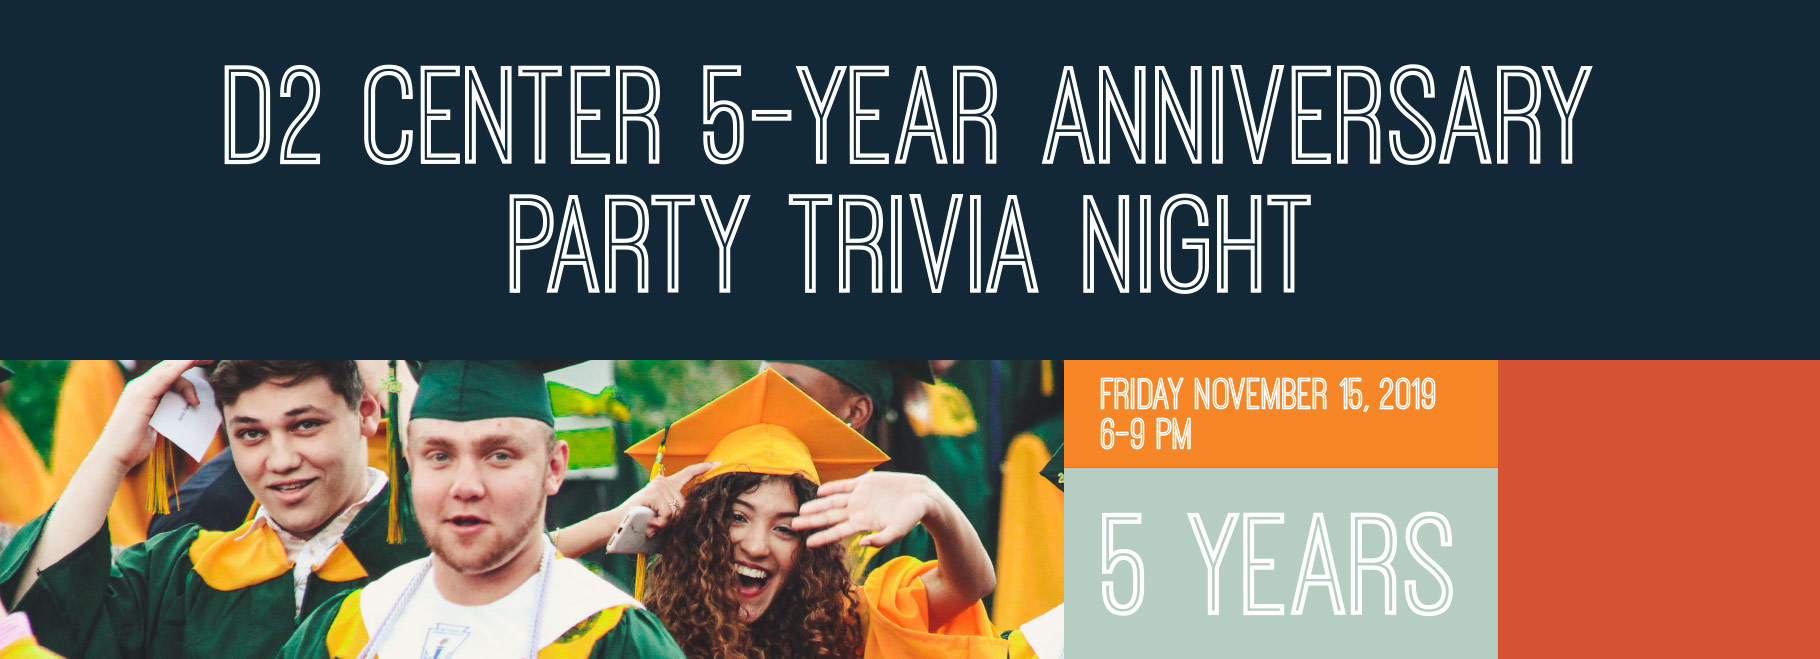 D2 Center 5-Year Anniversary Party Trivia Night